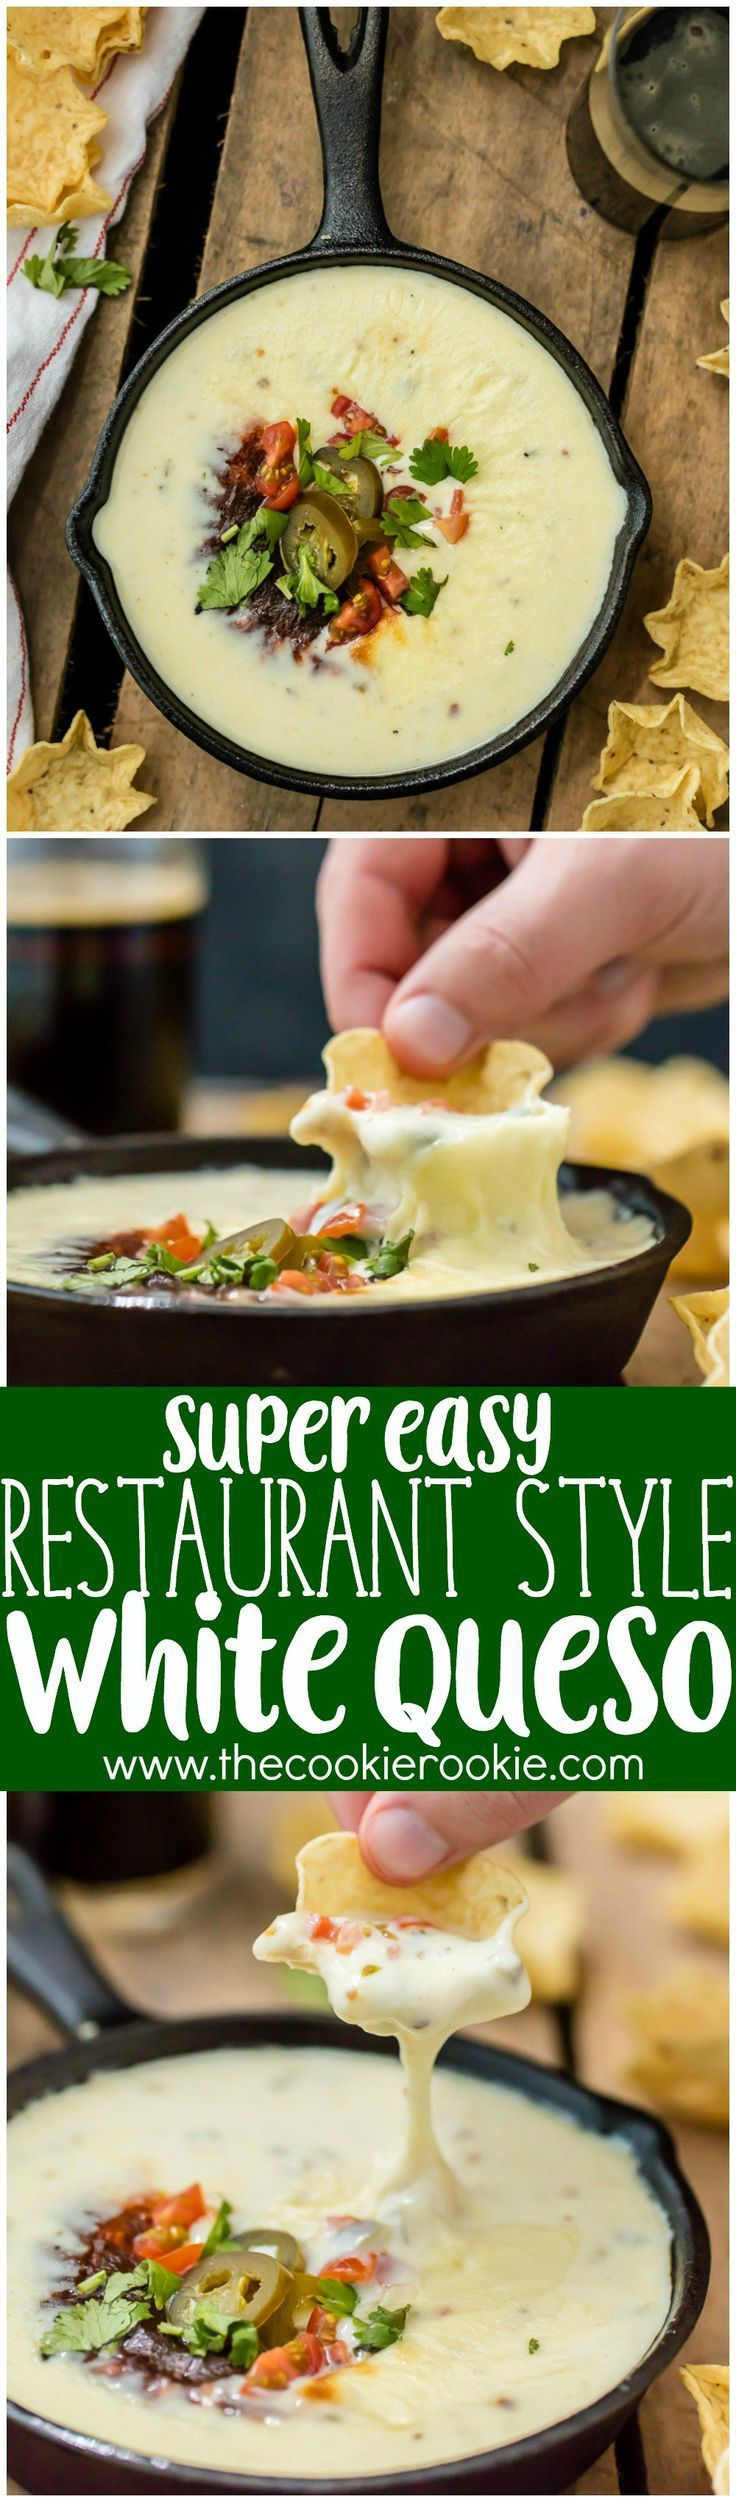 Easy Restaurant Style WHITE QUESO -FAVORITE DIP RECIPE. Tastes just like queso dip at Mexican restaurants!